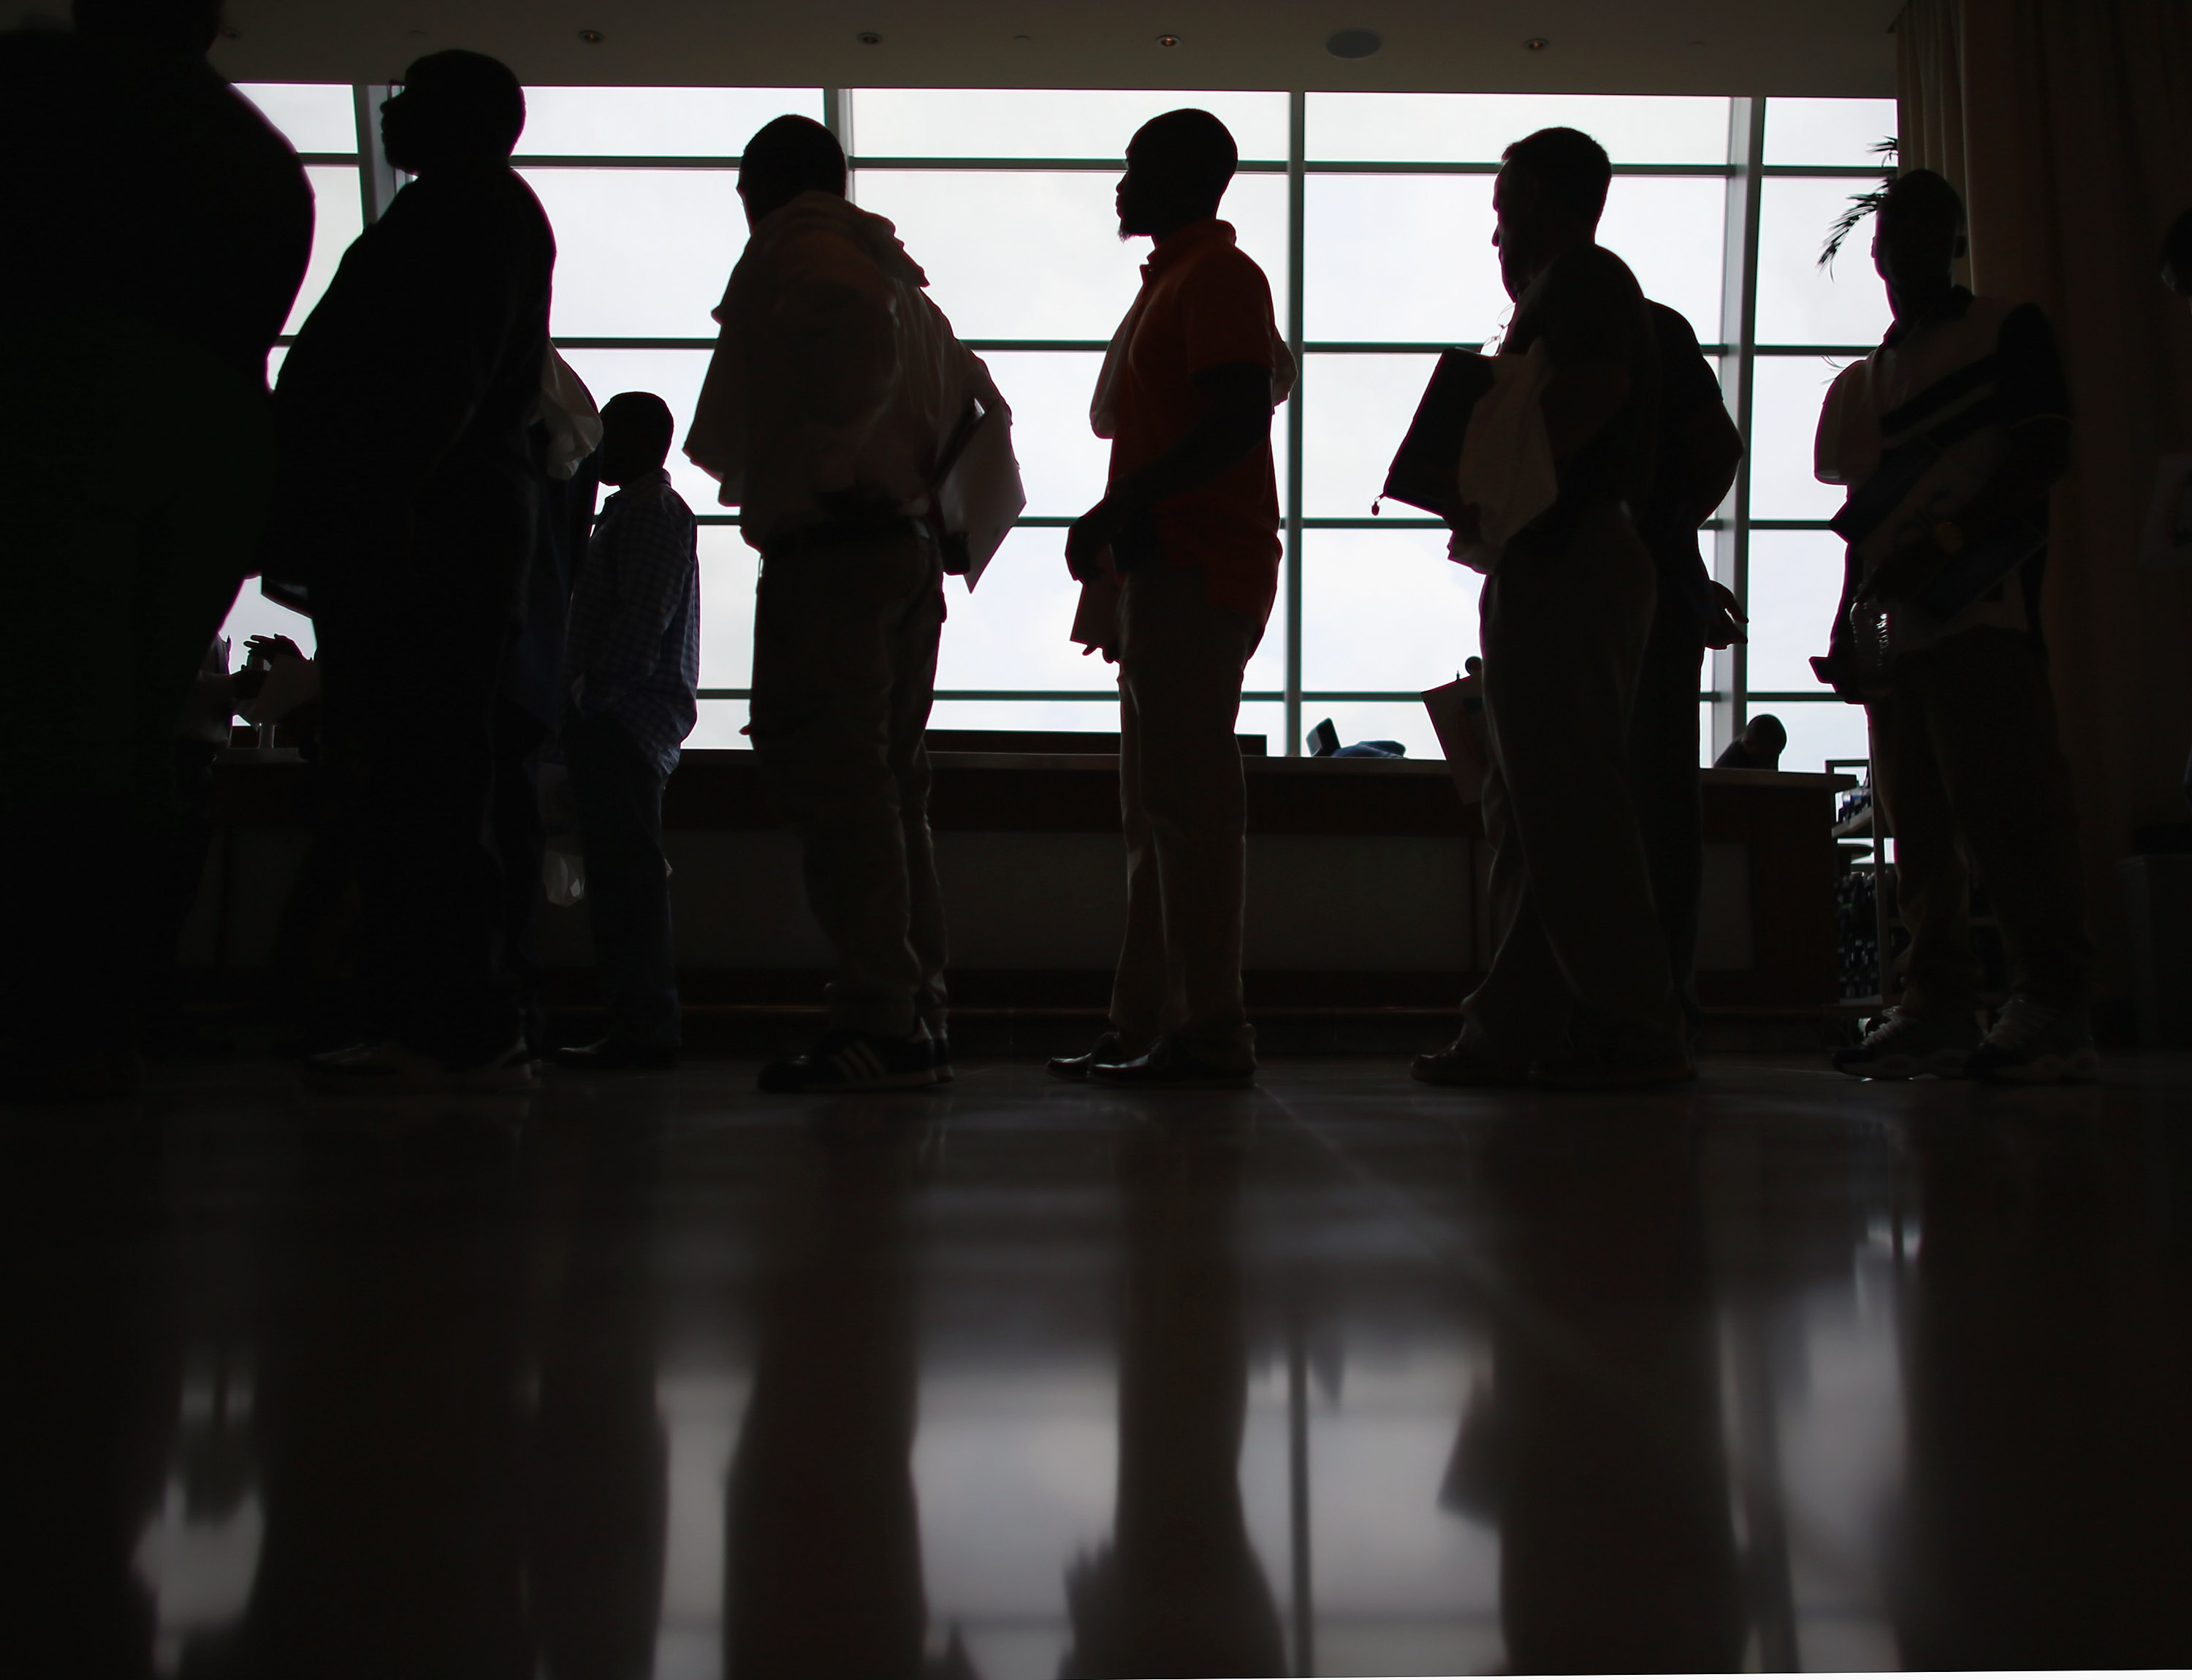 People looking for work stand in line to apply for a job during a job fair at the Miami Dolphins Sun Life stadium on May 2, 2013 in Miami, Florida.